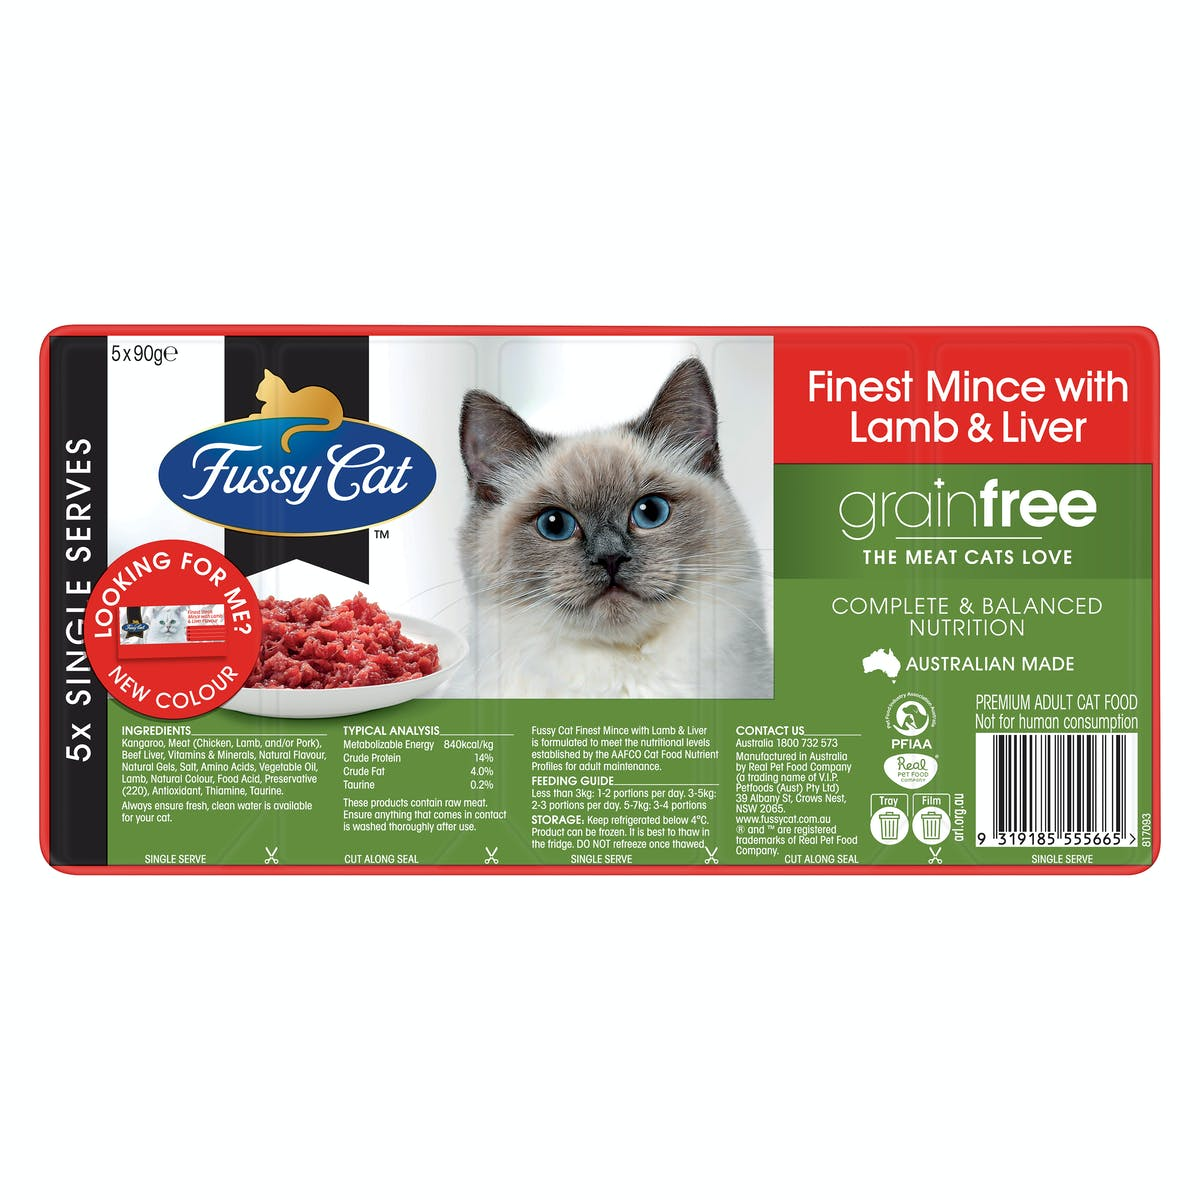 Fussy Cat | Finest Steak Mince with Lamb & Liver Flavour 5 x 90g | Chilled cat food | Front of pack